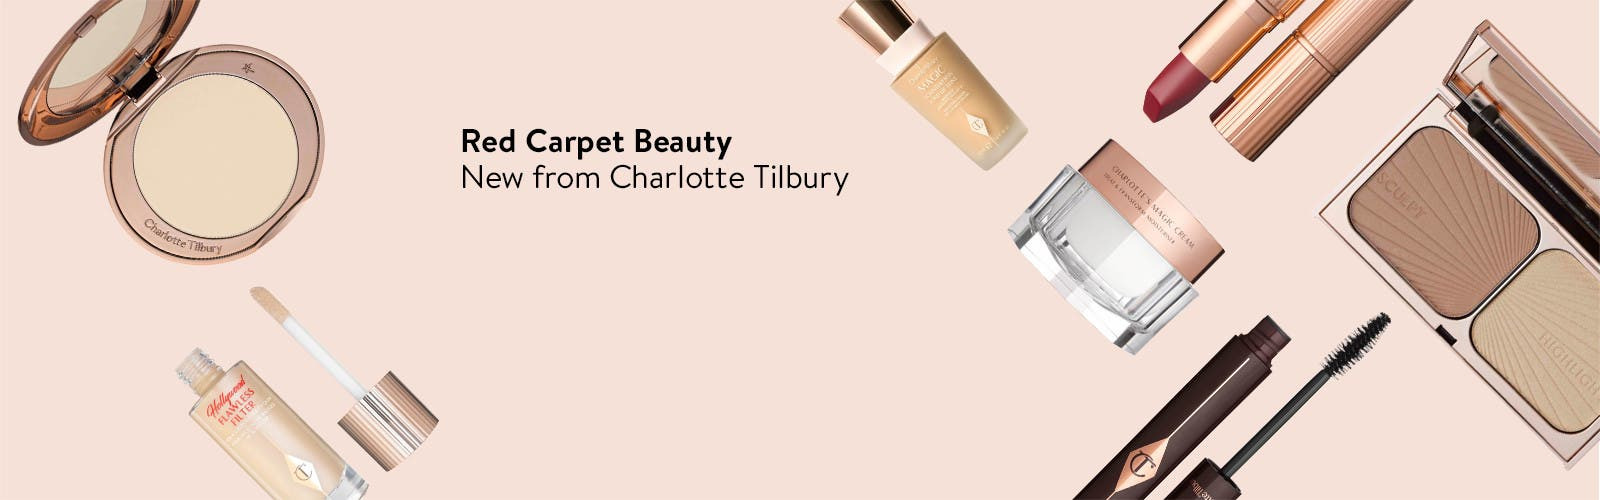 New Red Carpet Beauty from Charlotte Tilbury.